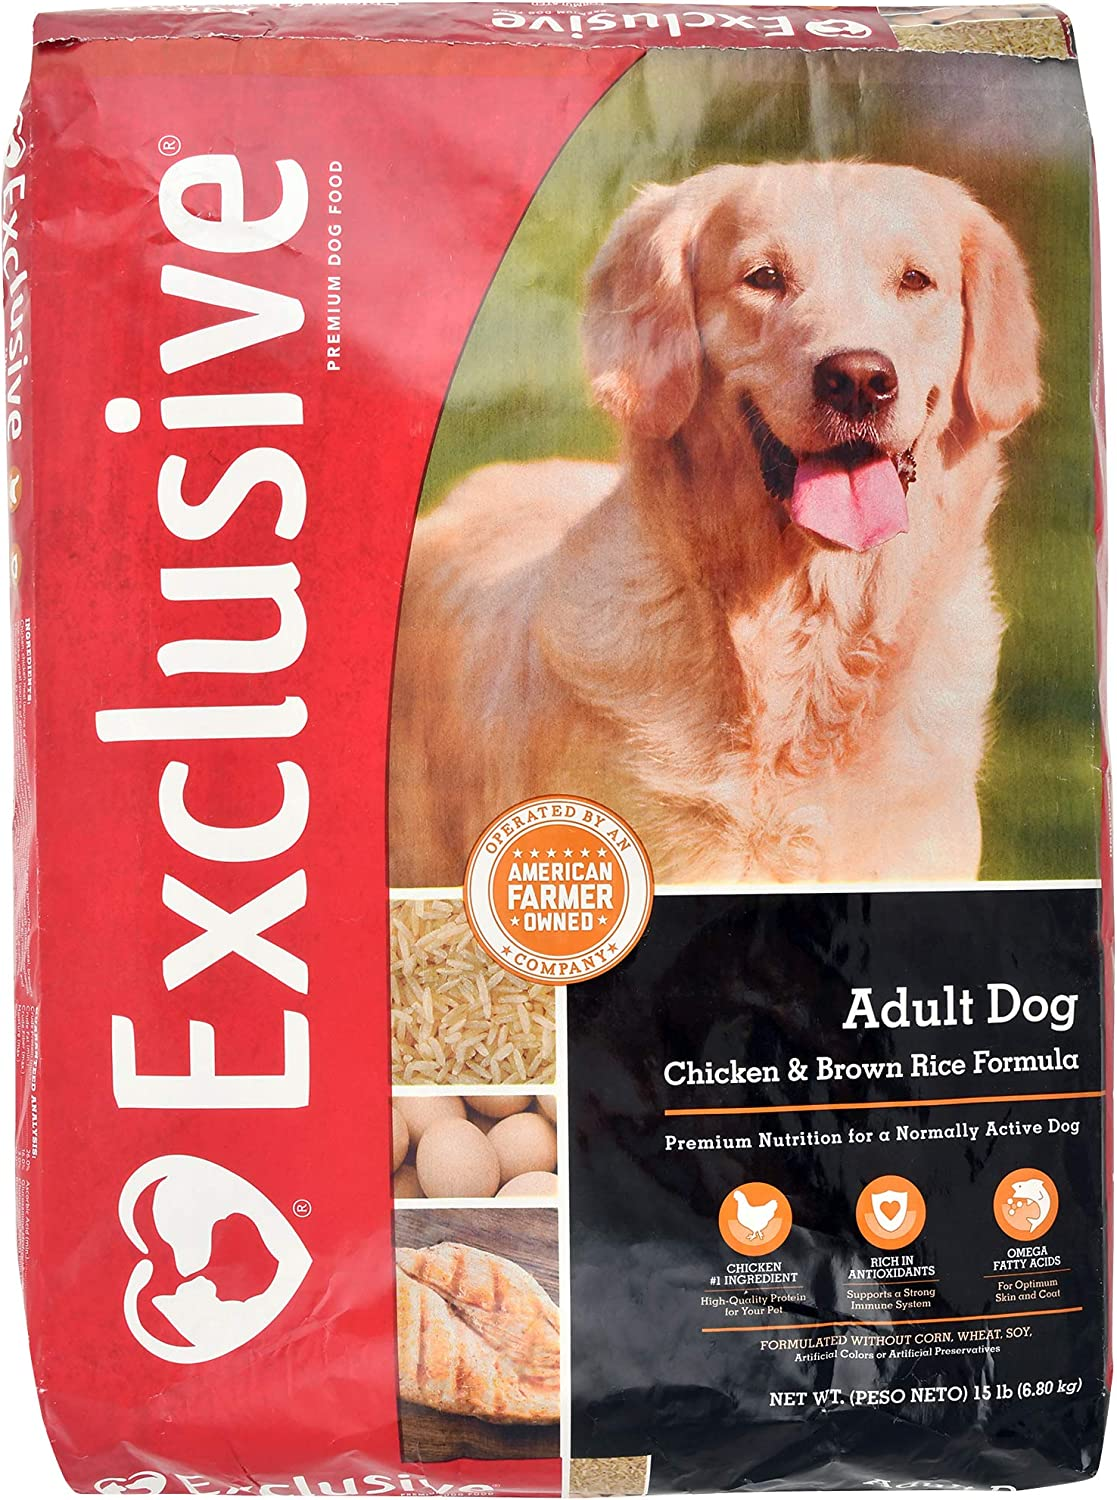 Exclusive Adult Dog Food Chicken Brown Rice Recipe, 15 lb Bag